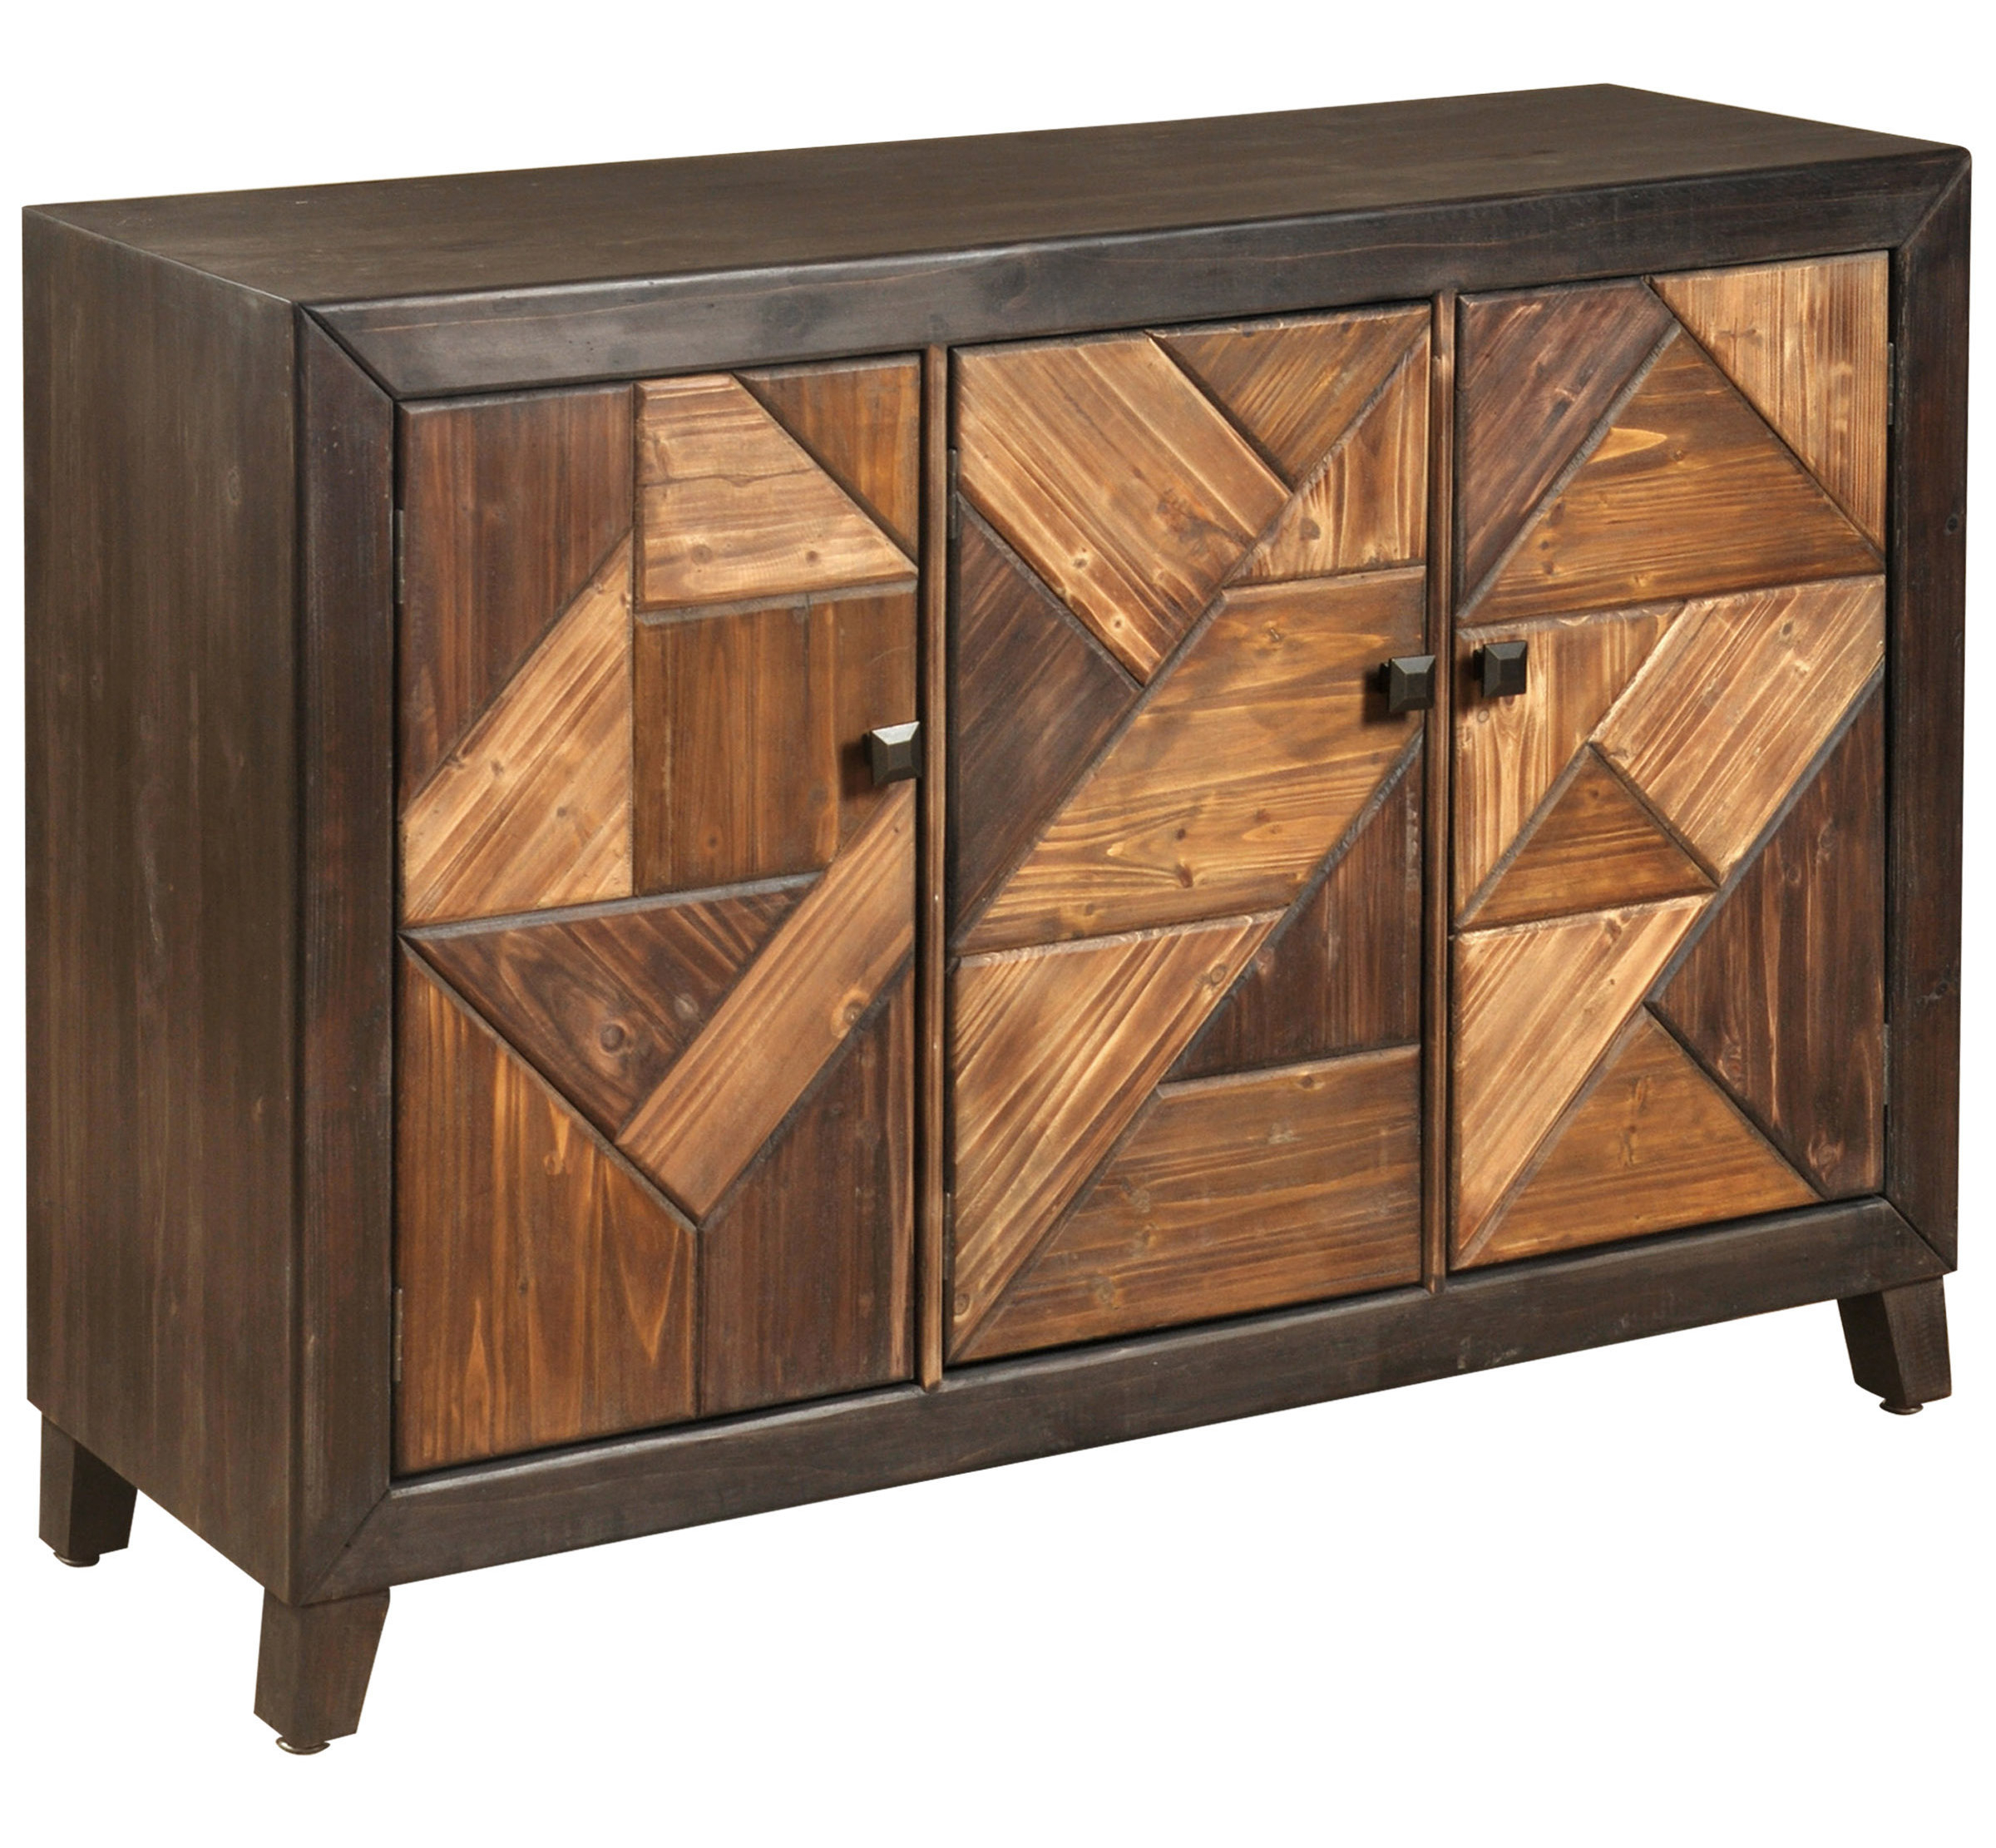 Bloomsbury Market Desirat Chevron Patterned 3 Door Server & Reviews With Regard To Widely Used Brown Chevron 4 Door Sideboards (View 4 of 20)